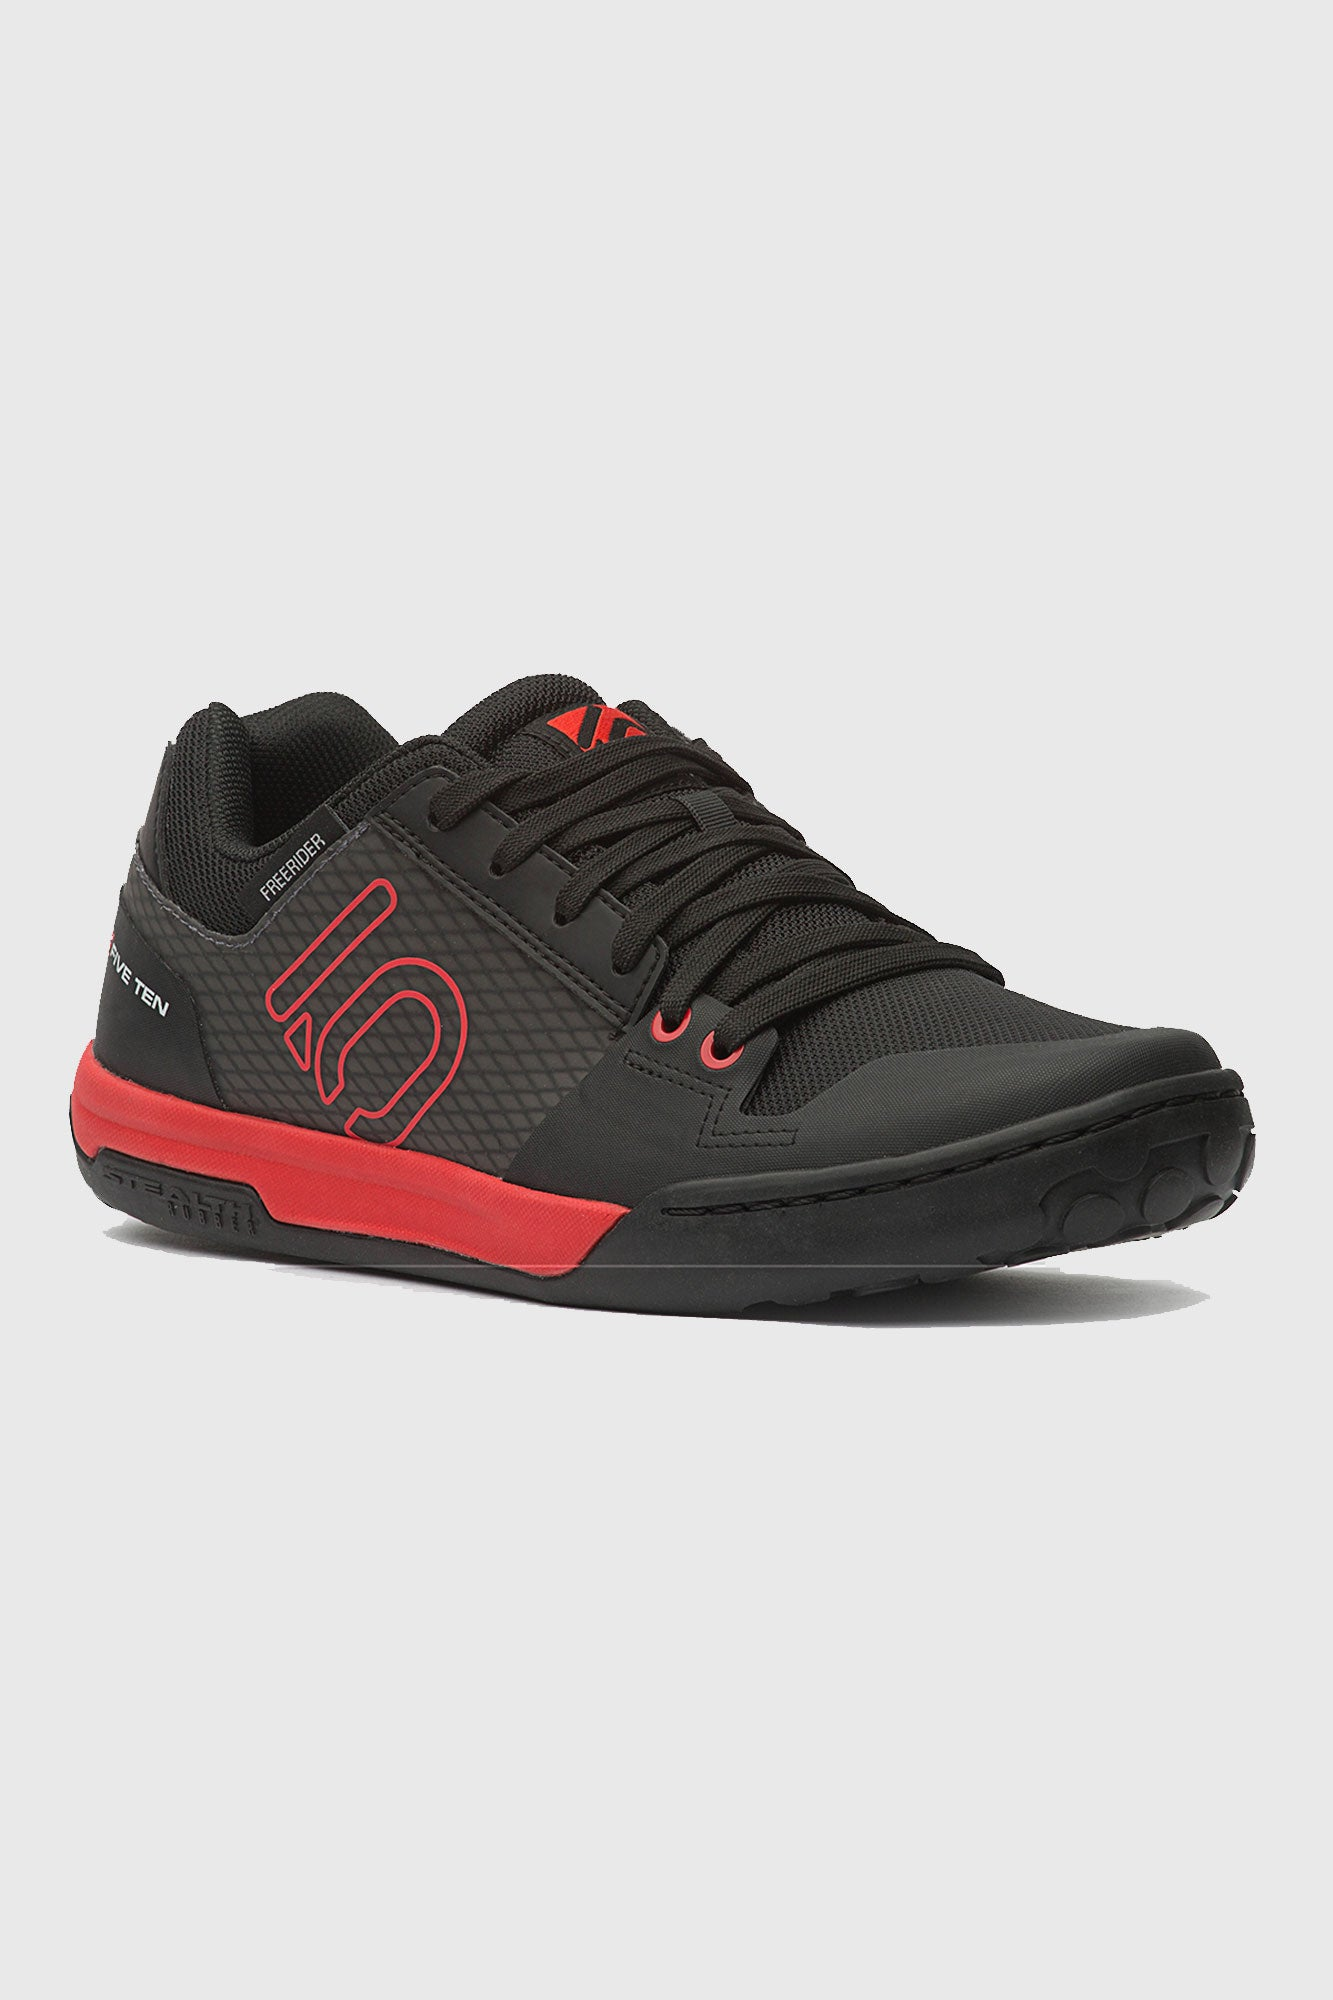 Five Ten Freerider Contact Team Black Red